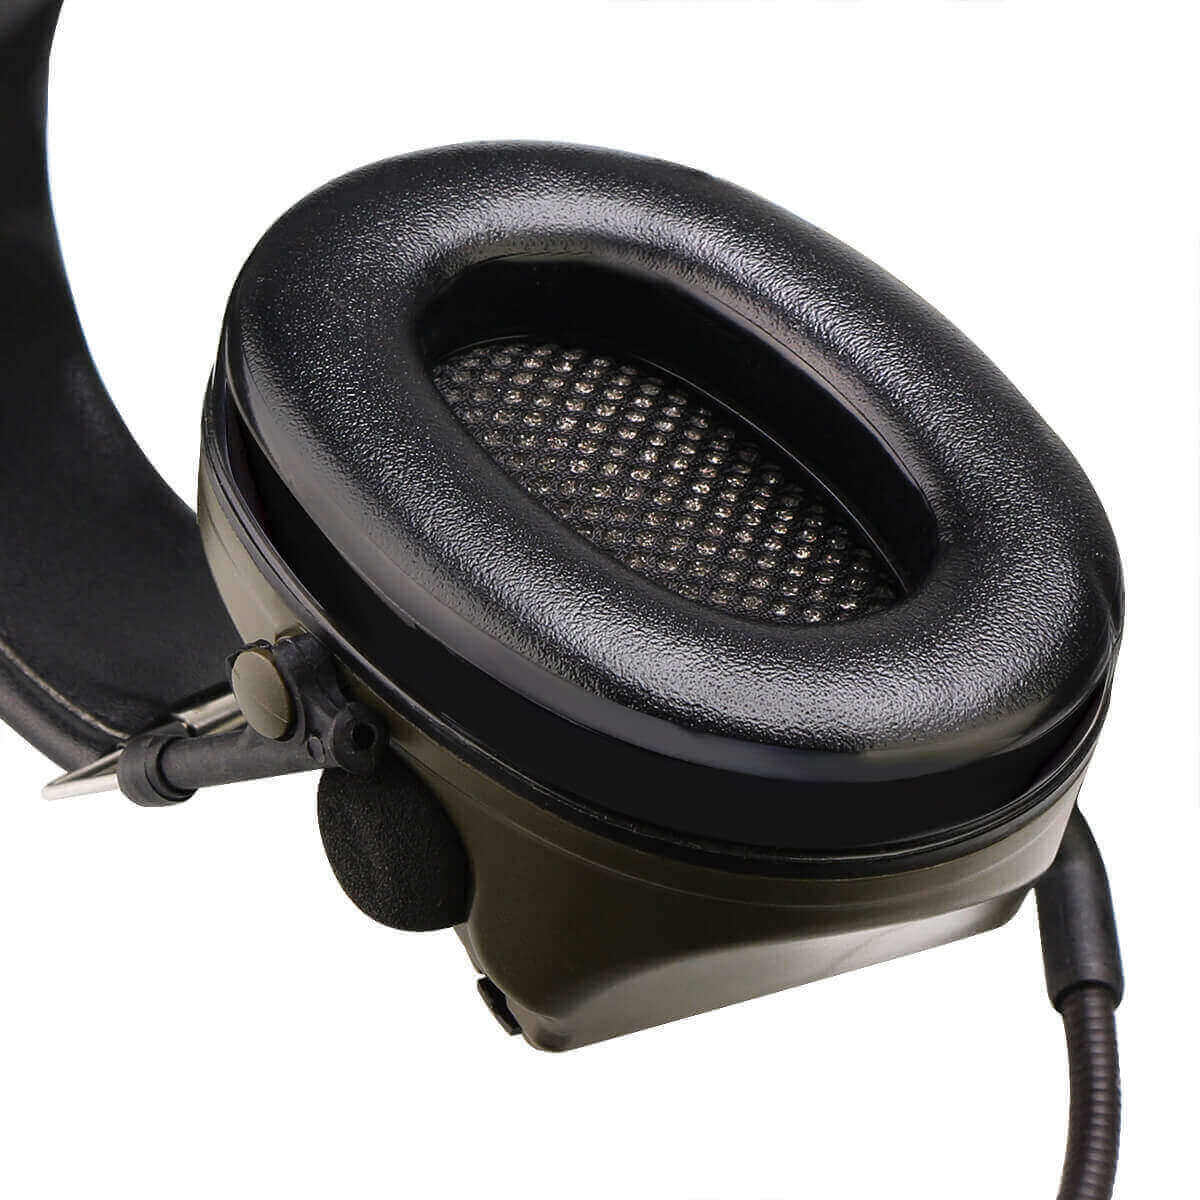 Noise Reduction Headphones for shooting